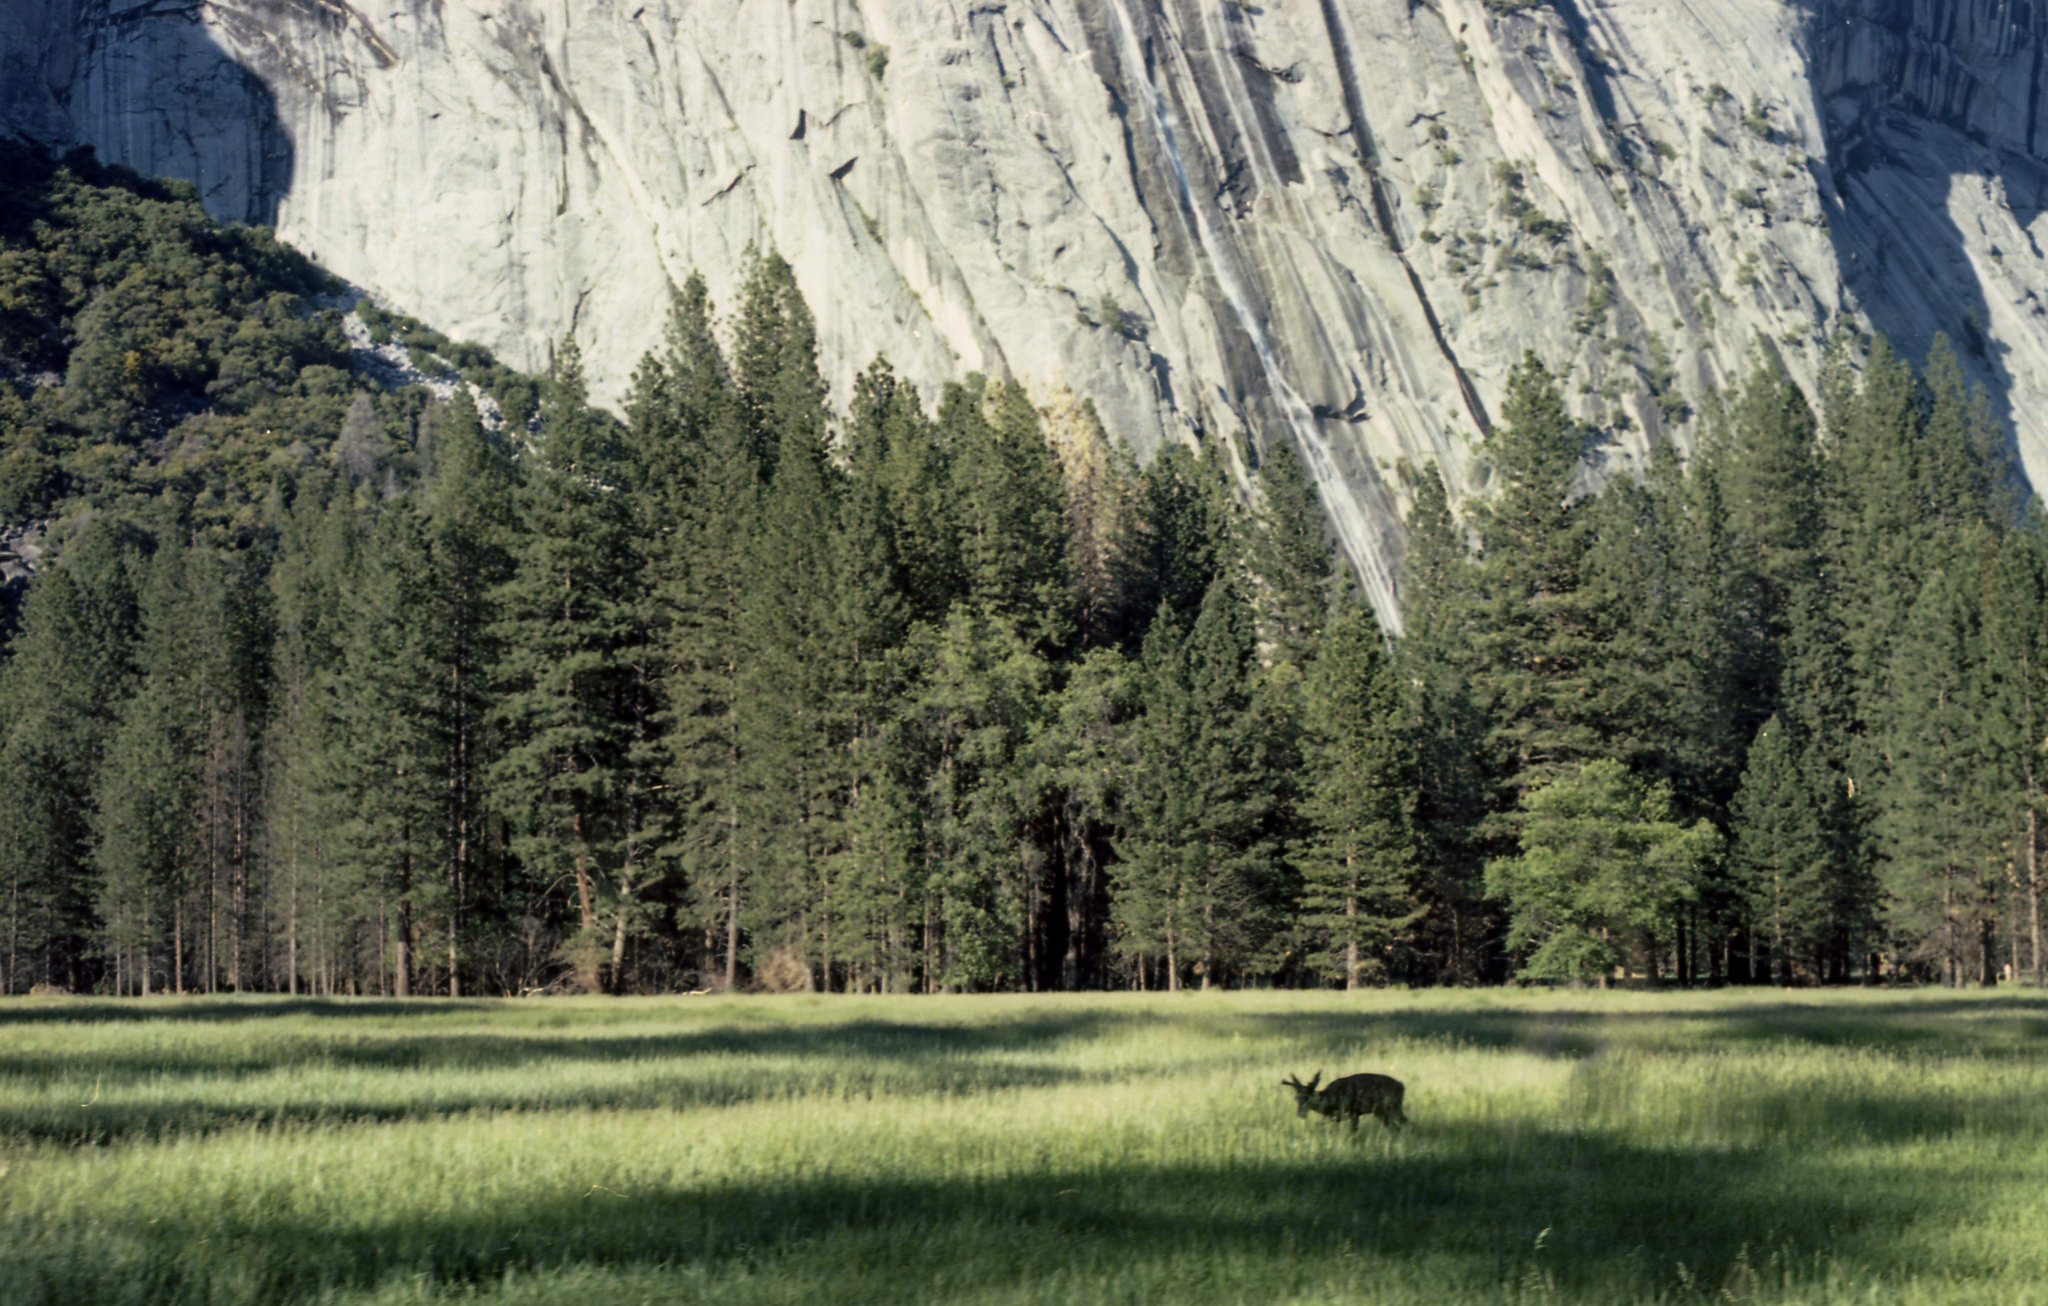 yosemite-national-park-valley-cassie-cook-photography